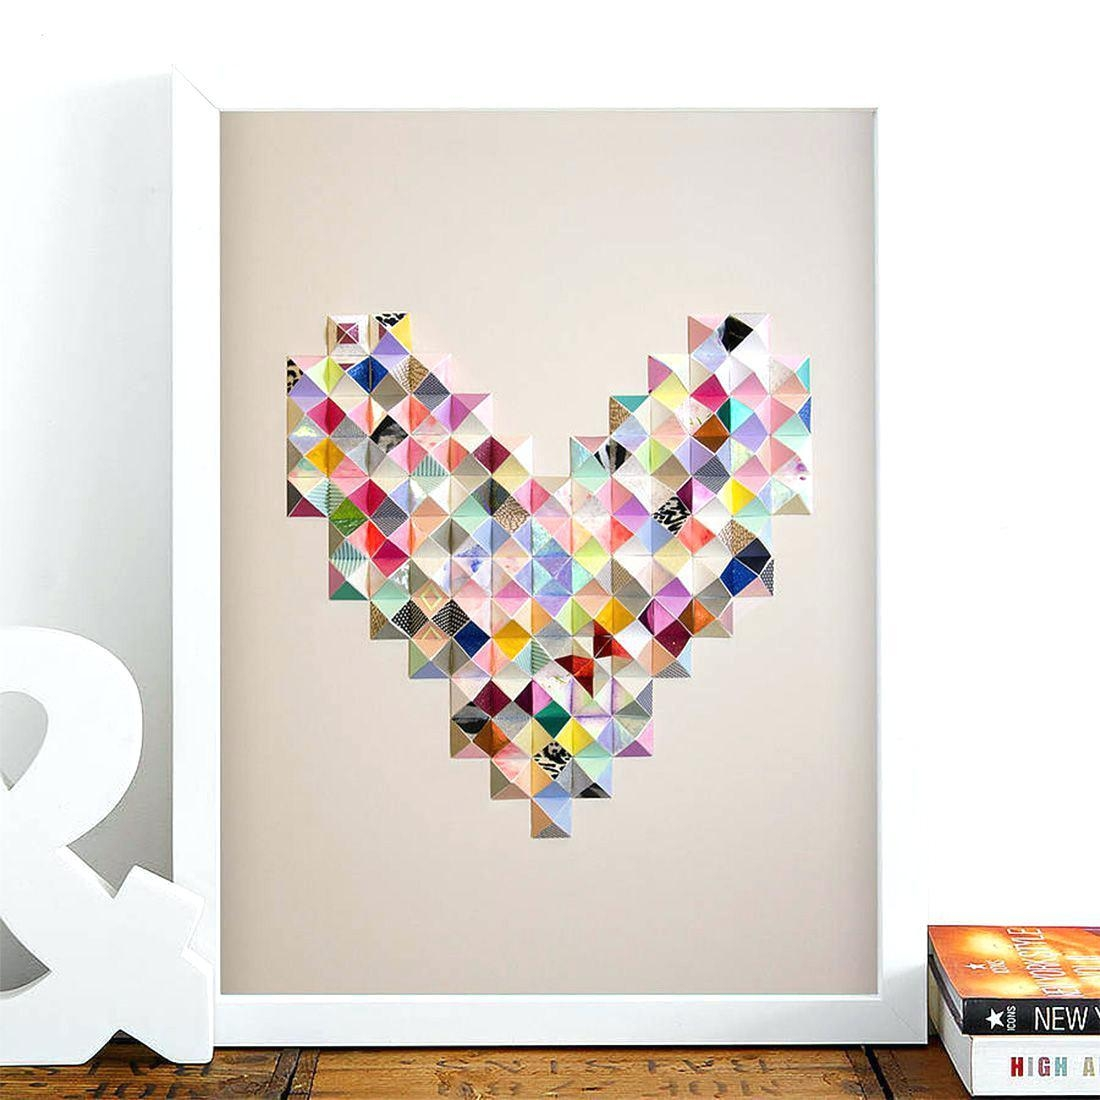 Wall Ideas: 3D Wall Art Nightlight. 3D Wall Art Nightlight (Image 19 of 20)